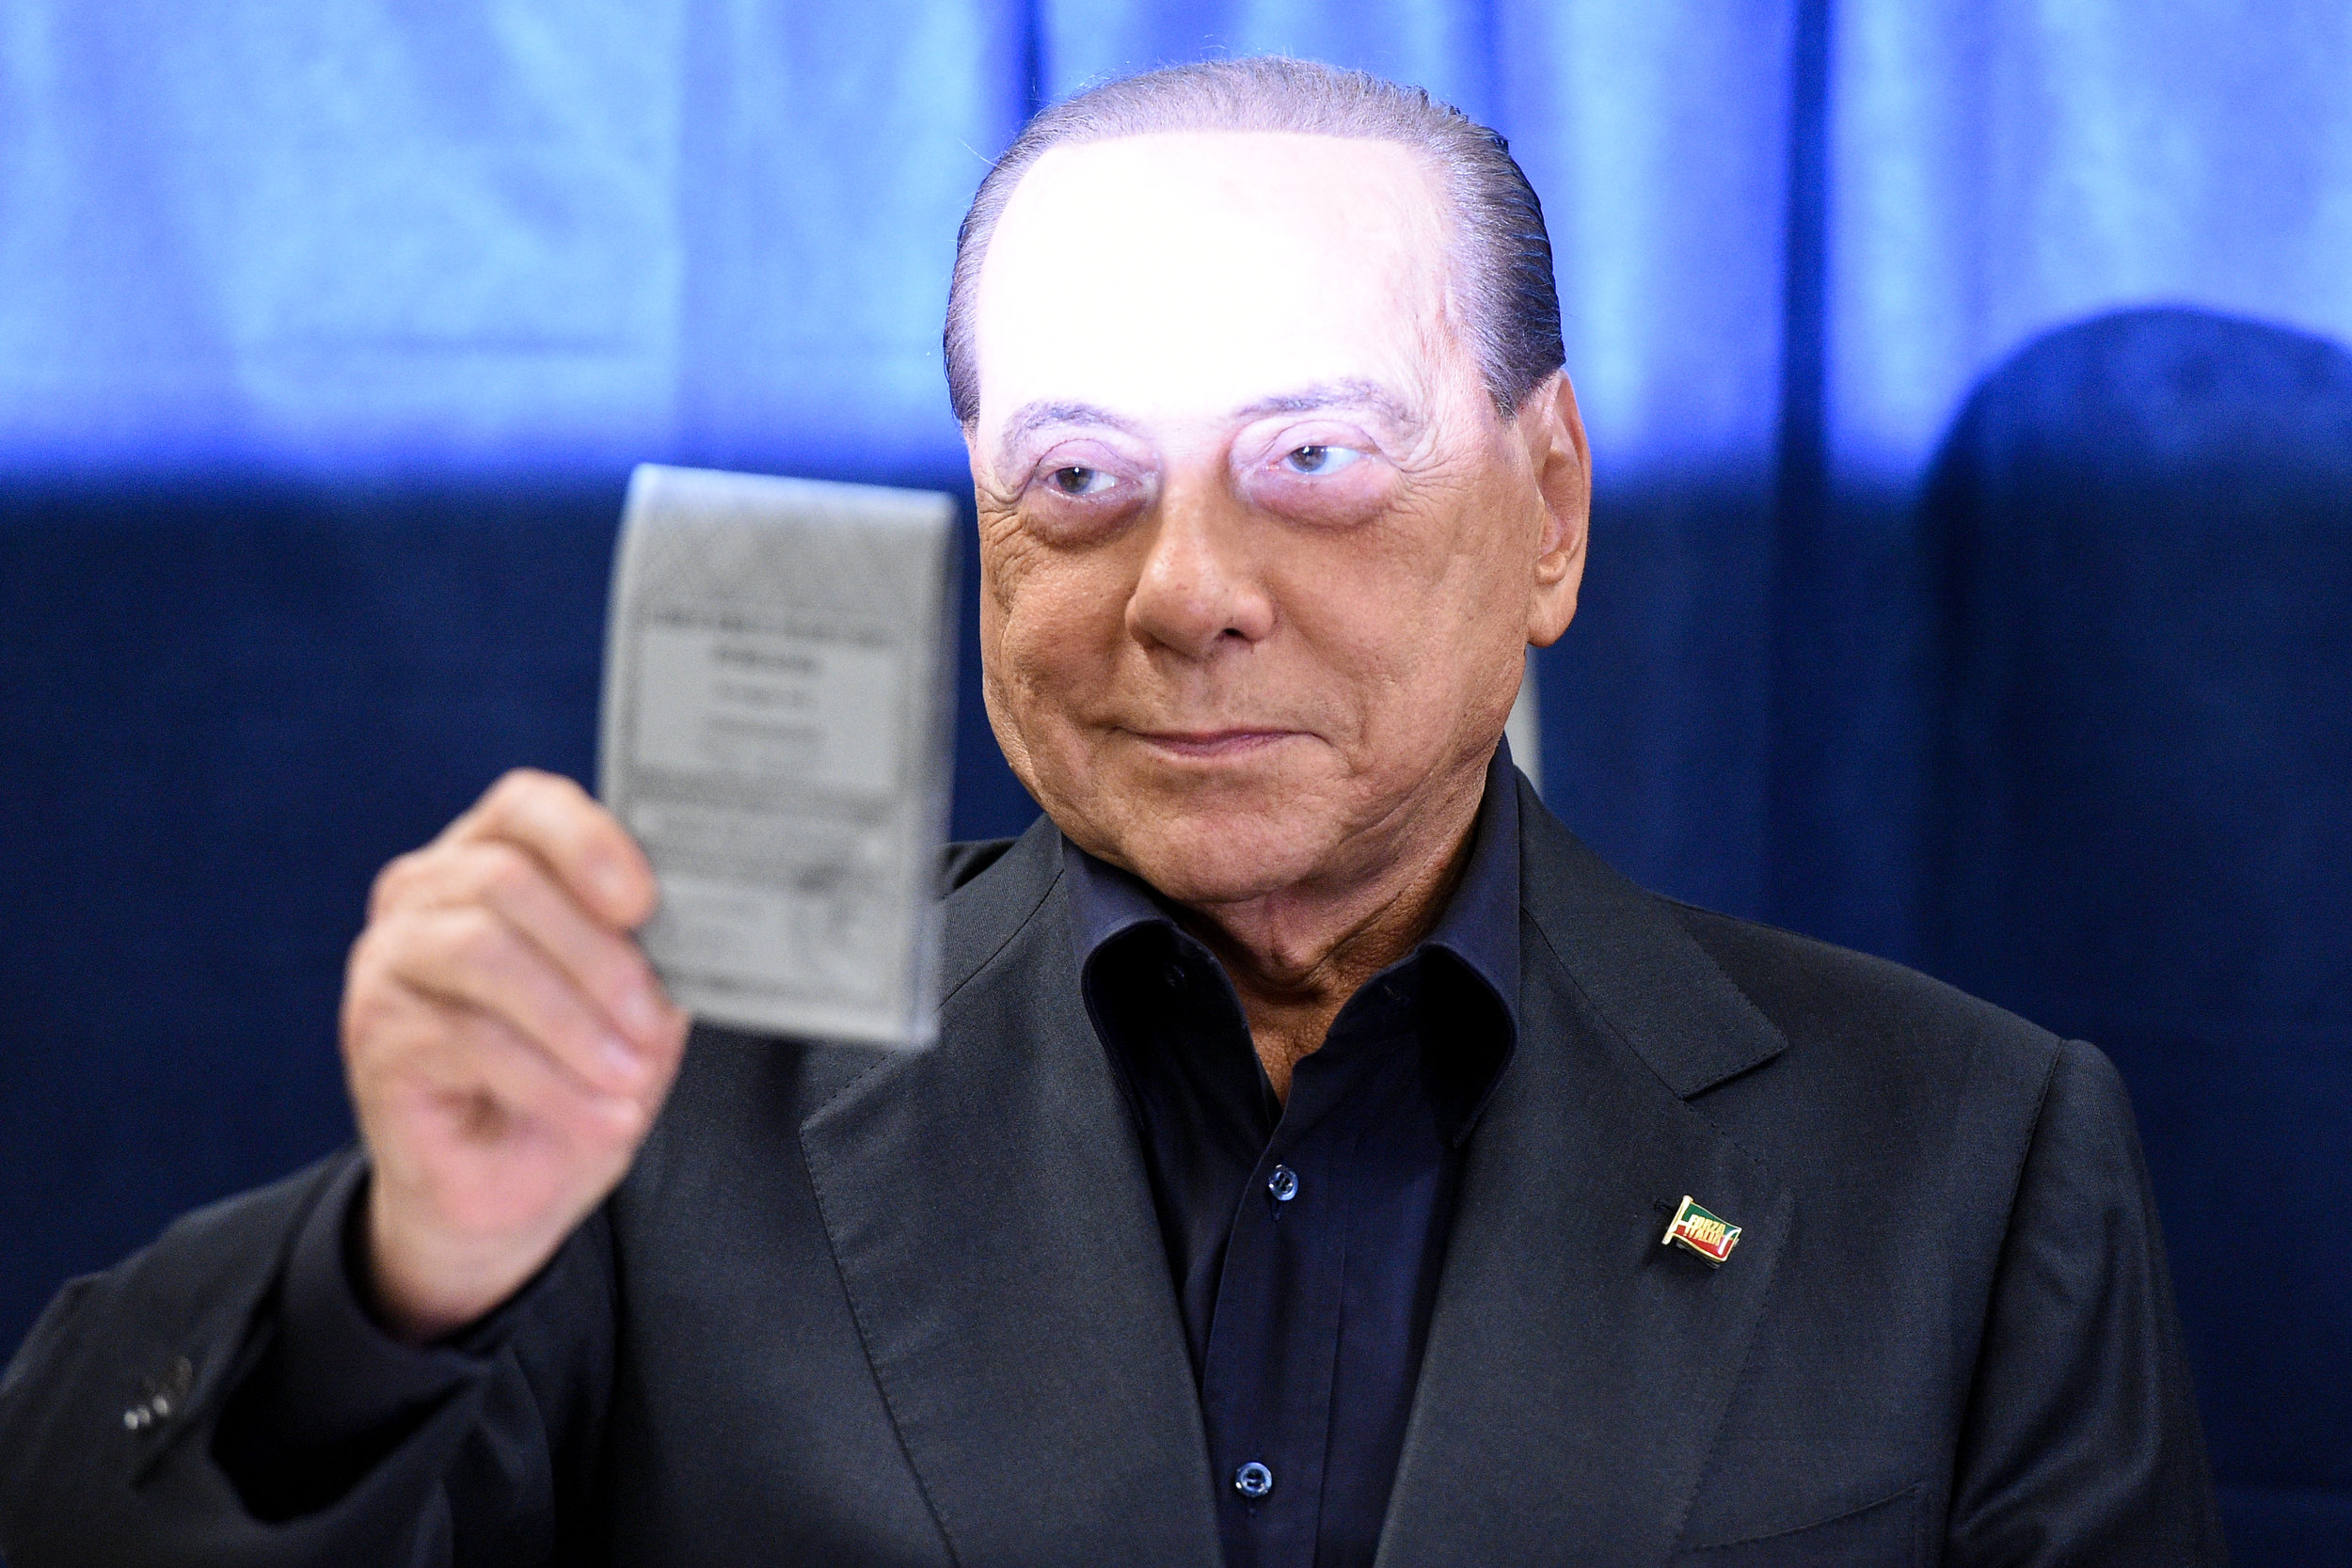 Silvio Berlusconi, former Italian prime minister and leader of Forza Italia (Go Italy!) party, shows his ballot at a European Parliament election polling station in Milan, Italy May 26, 2019.